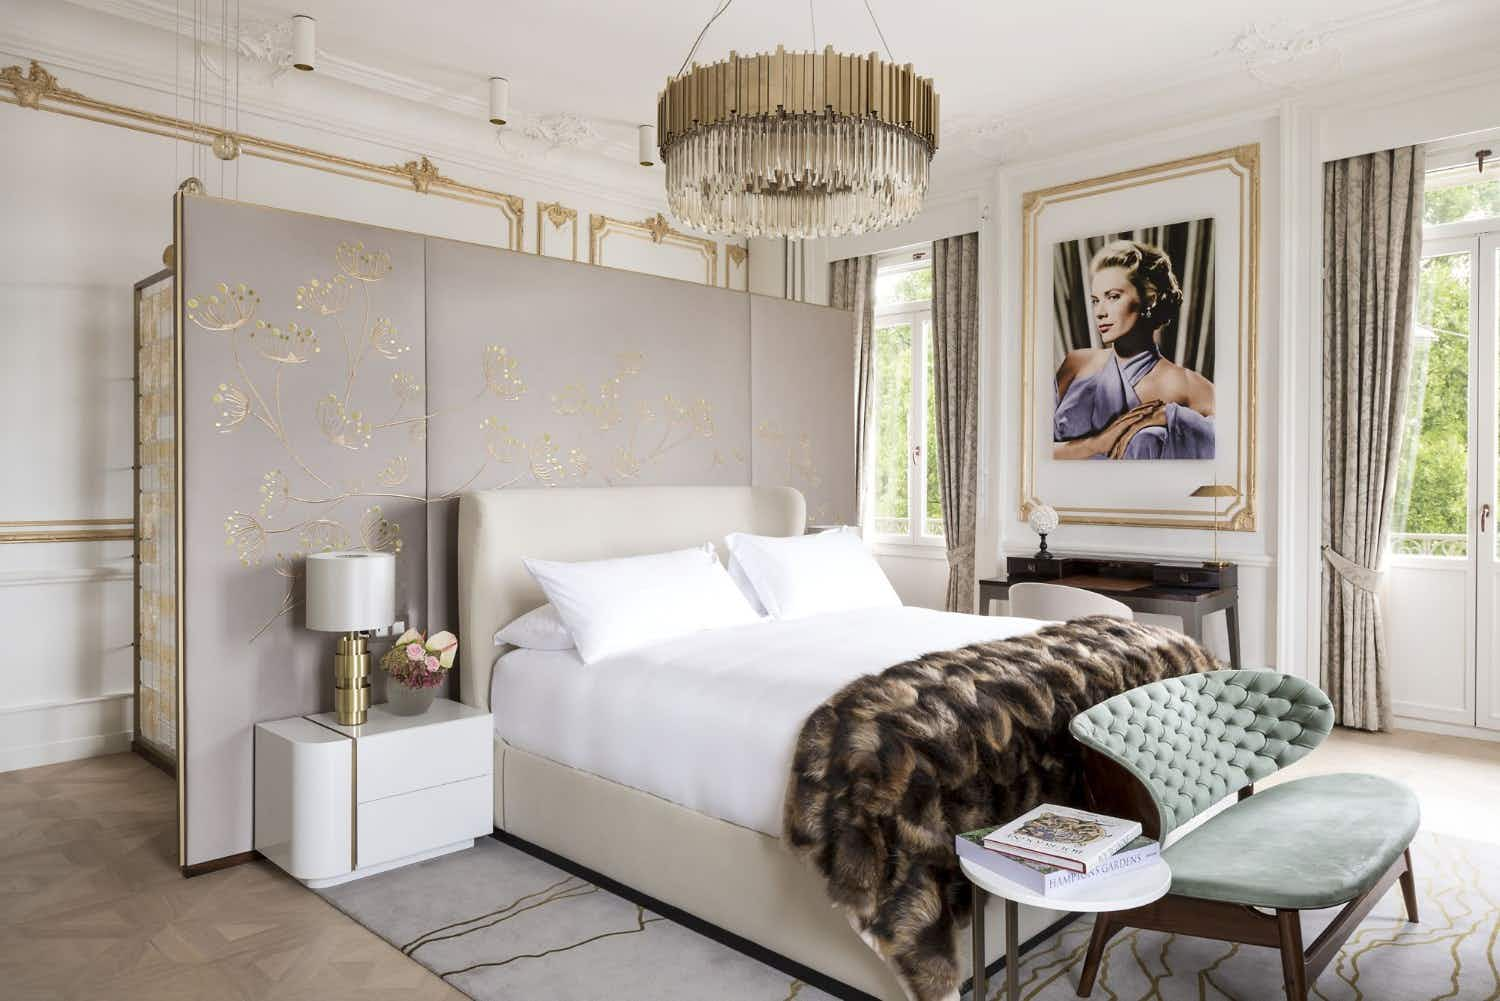 You can live like royalty in this Swiss hotel's sophisticated Grace Kelly suite